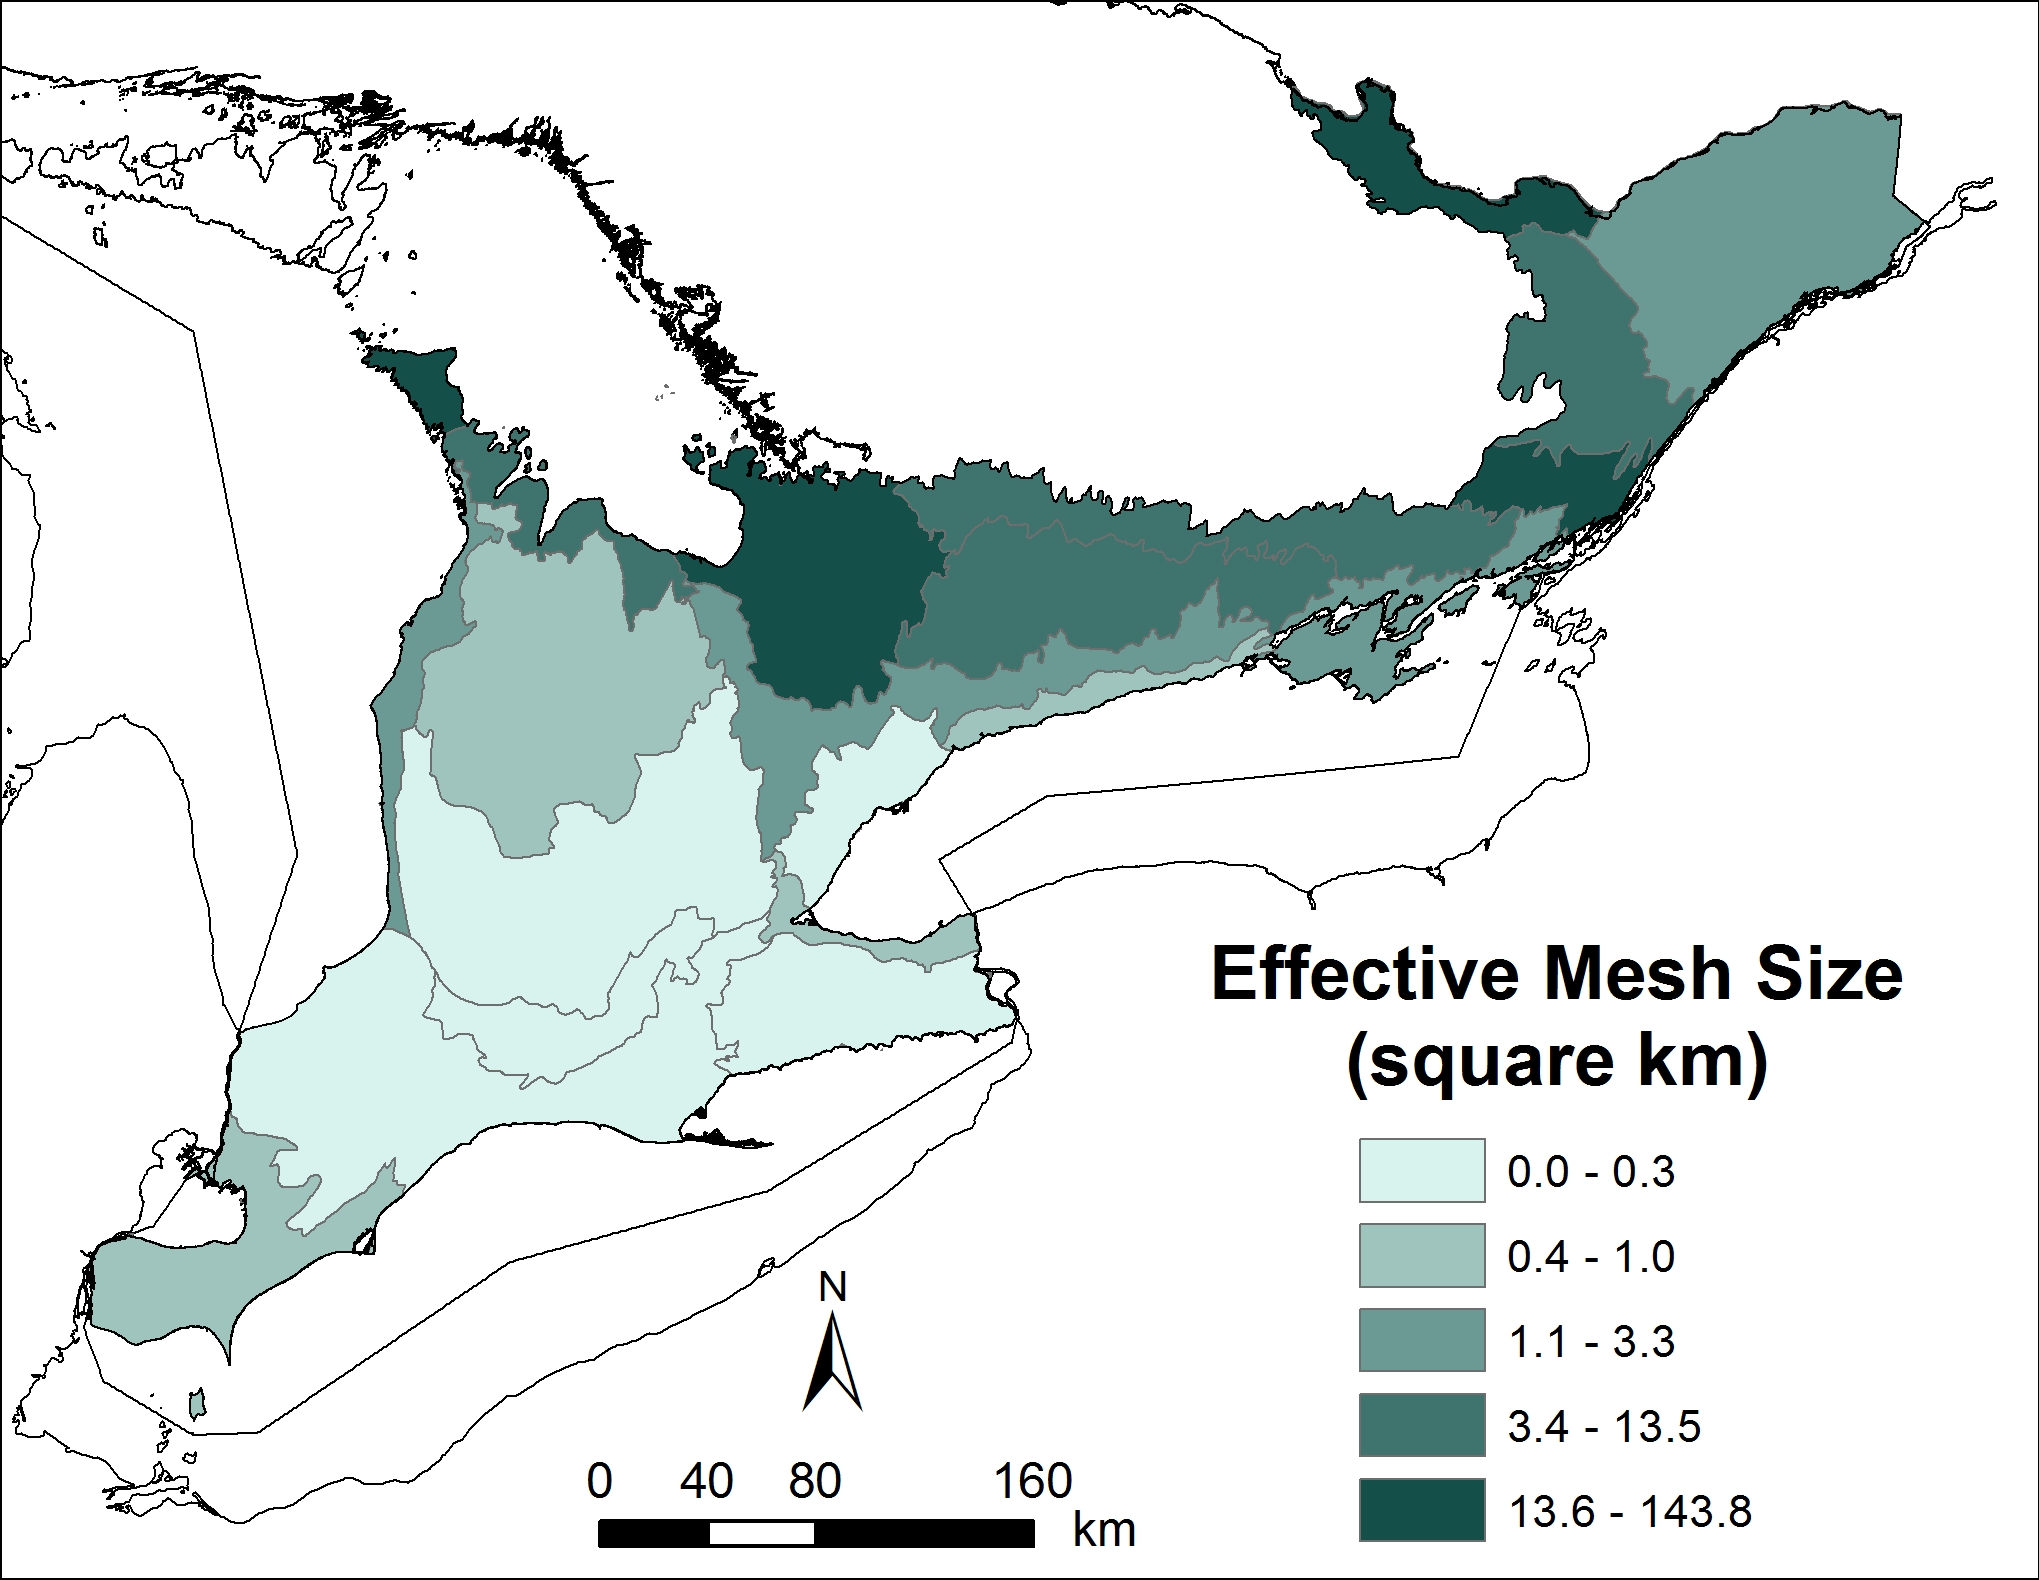 Figure 1: Effective Mesh Size for ecodistricts in southern Ontario (2011).